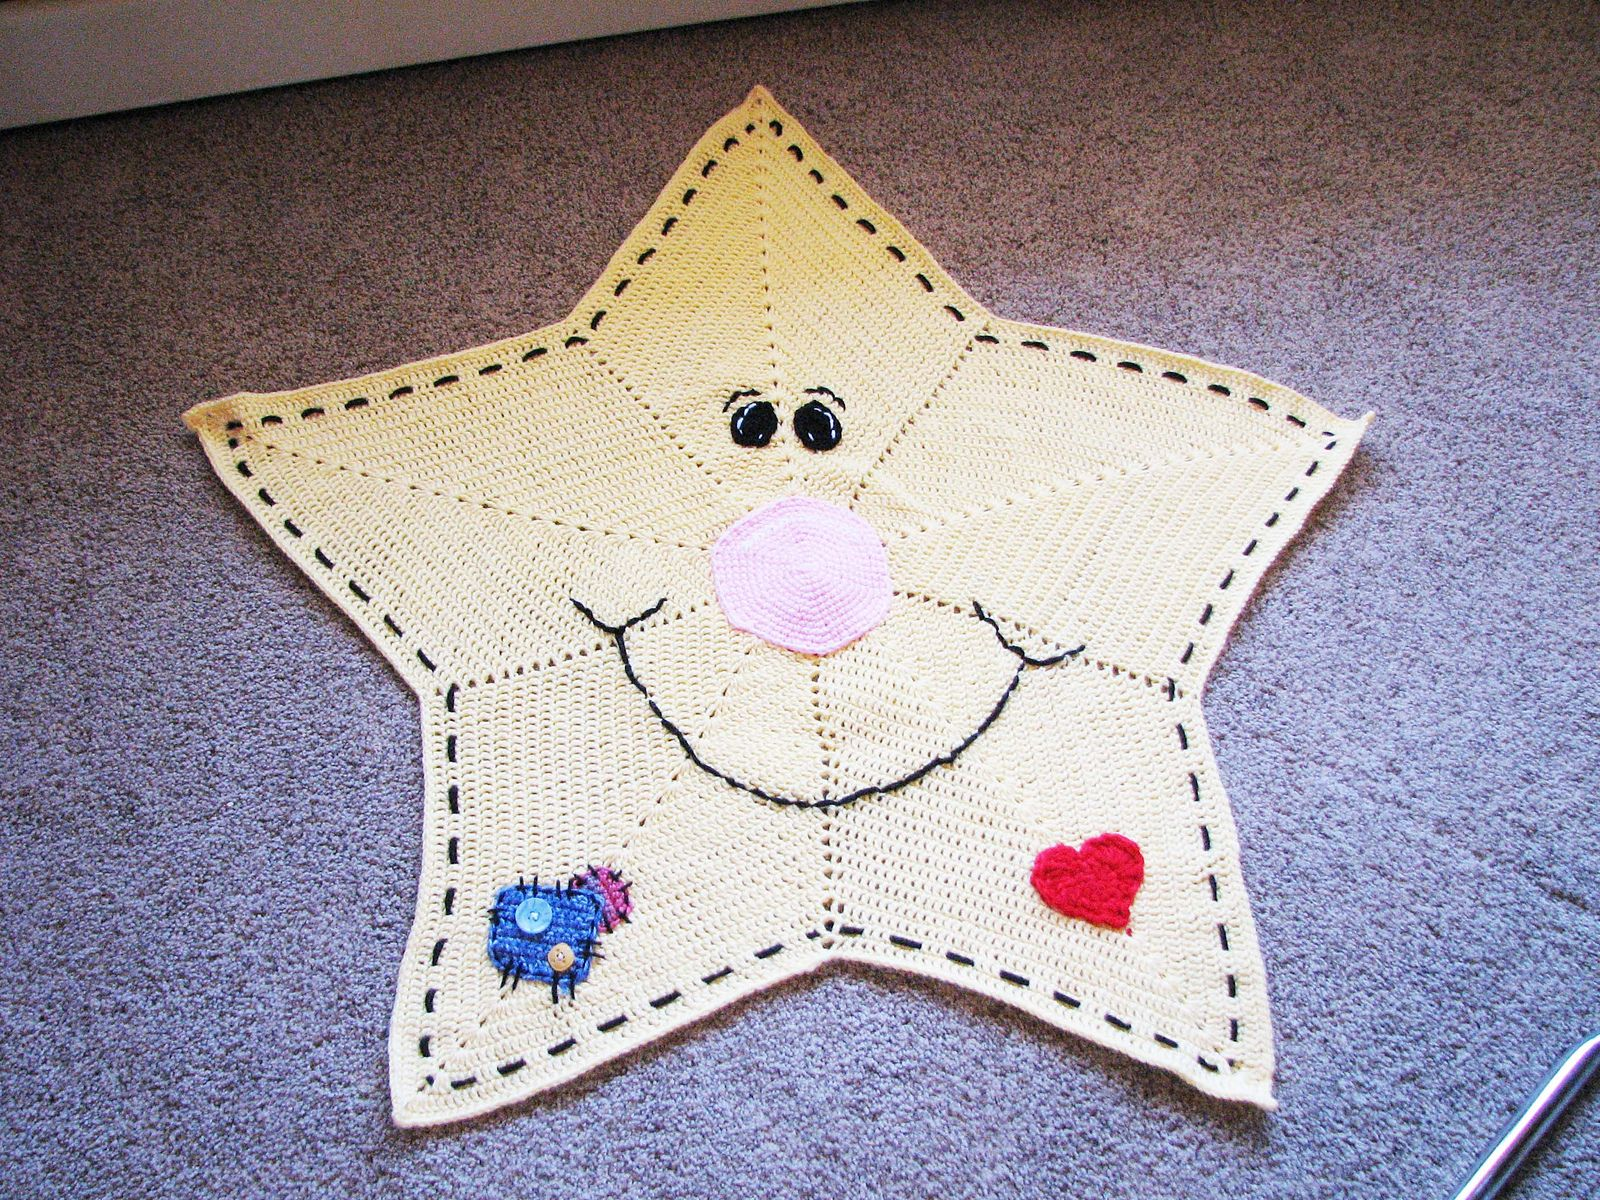 Star Blanket - Twinkles the Little Star pattern by Linda Jacquet